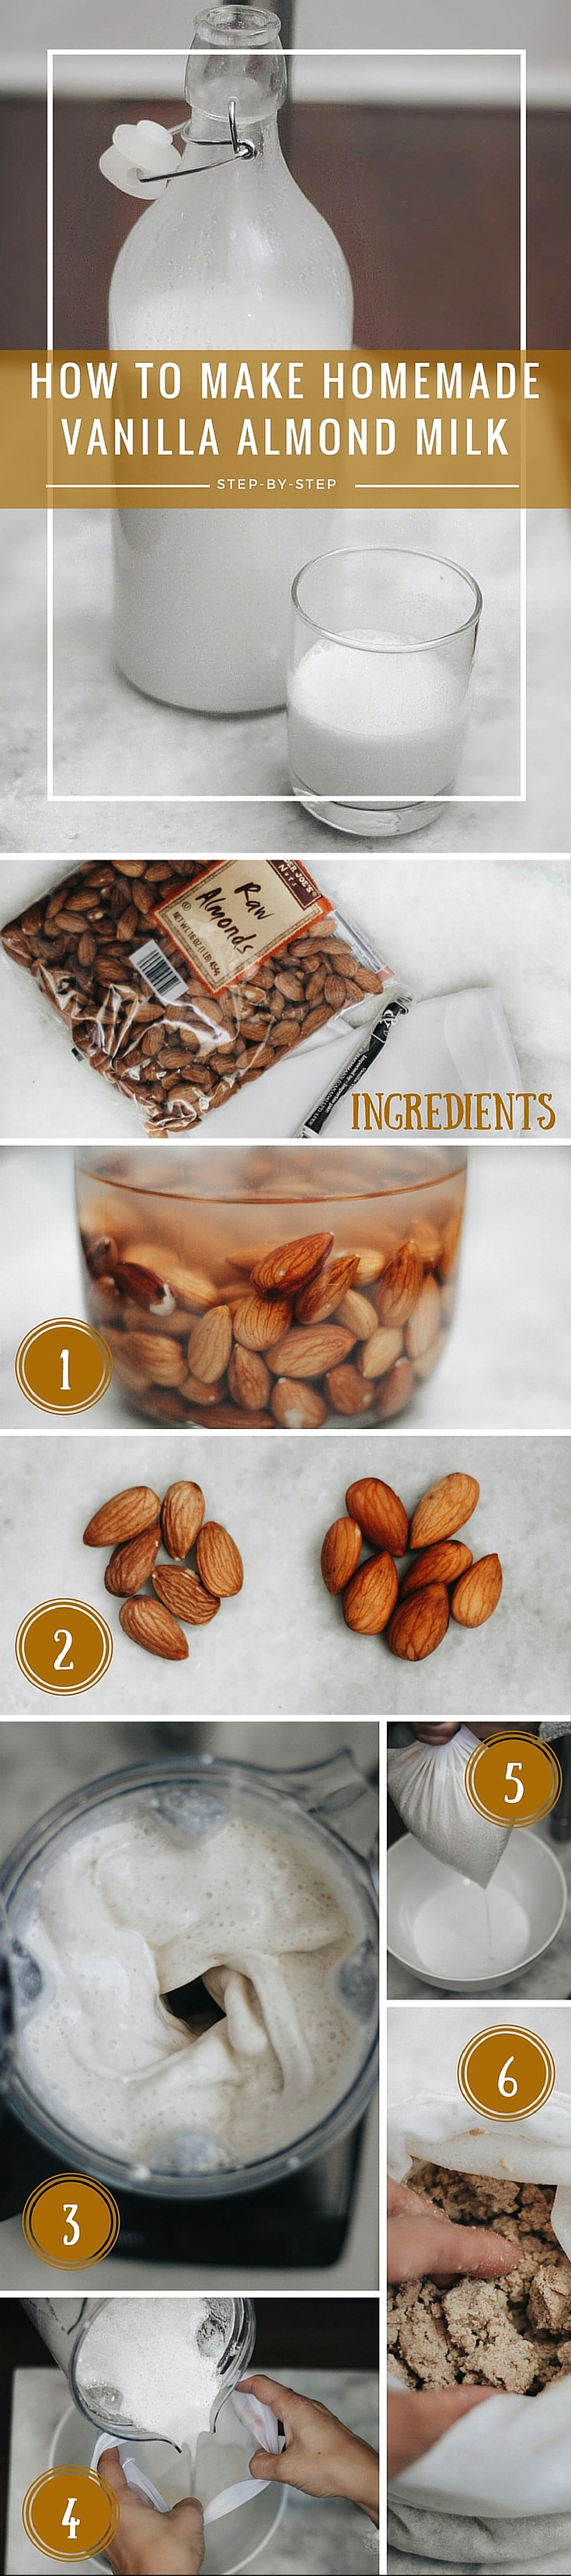 how-to-make-homemade-almond-milk